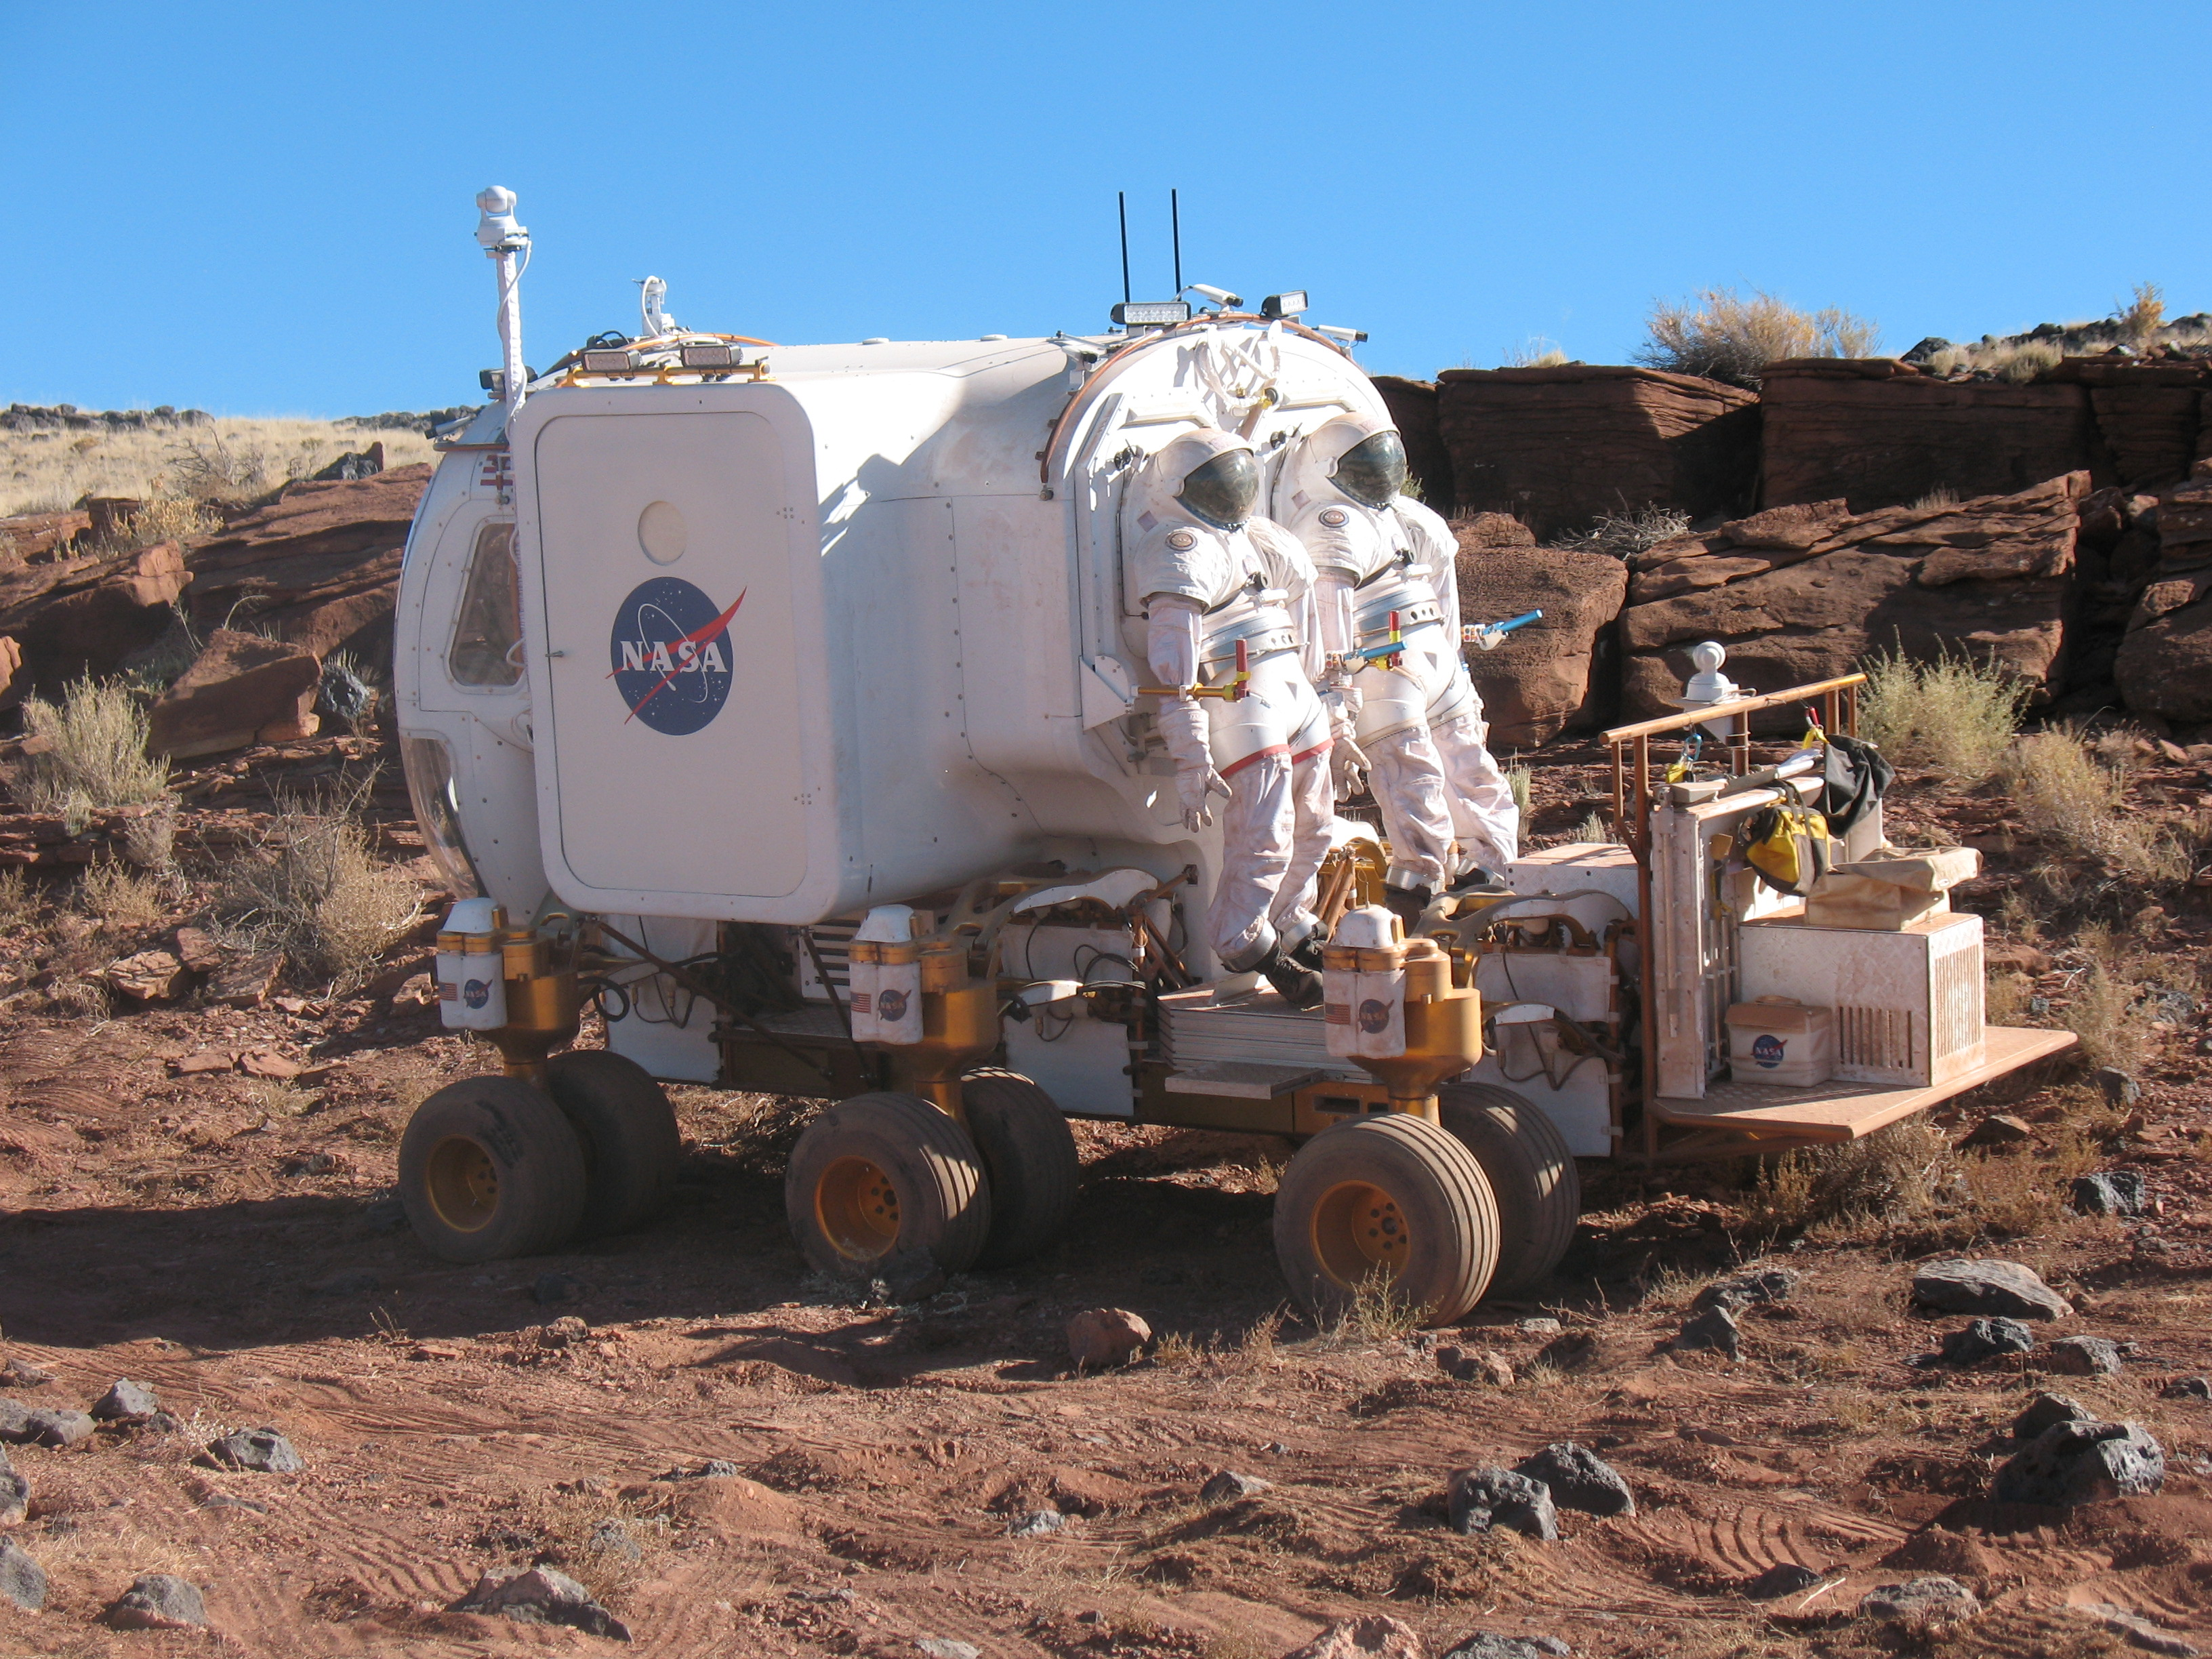 Electric NASA Rover - Pics about space